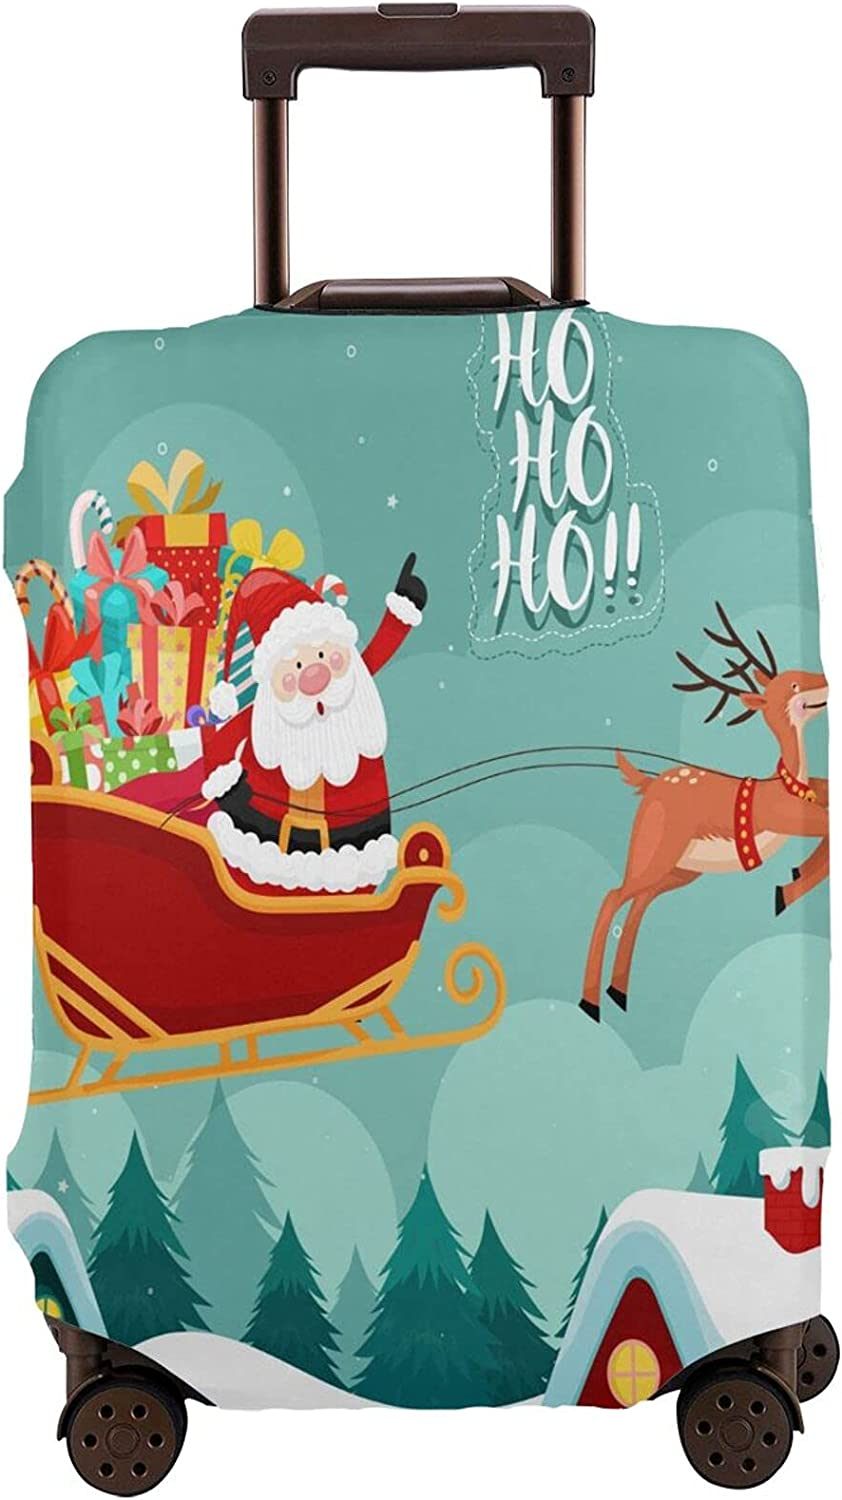 Austin Mall Santa Ride Sleigh Travel Department store Luggage Suitcase Protector 18 Fit Cover